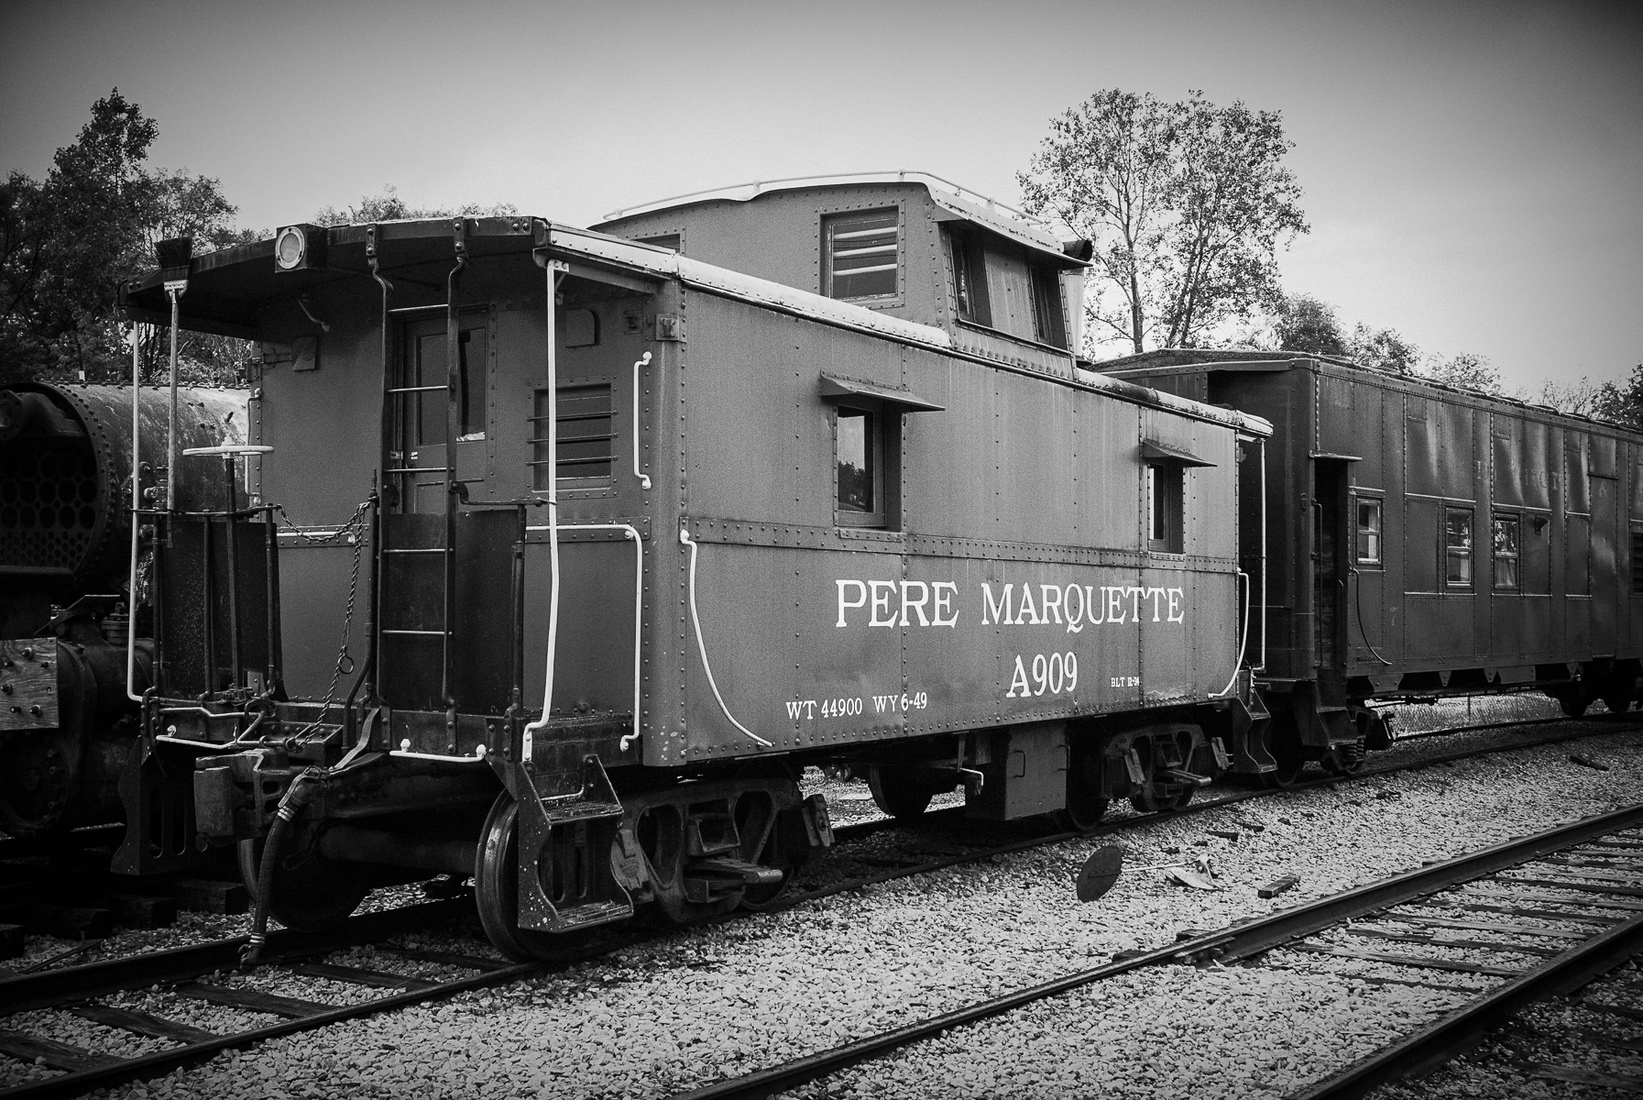 Iron, Steel and Steam Pere Marquette Caboose - BW